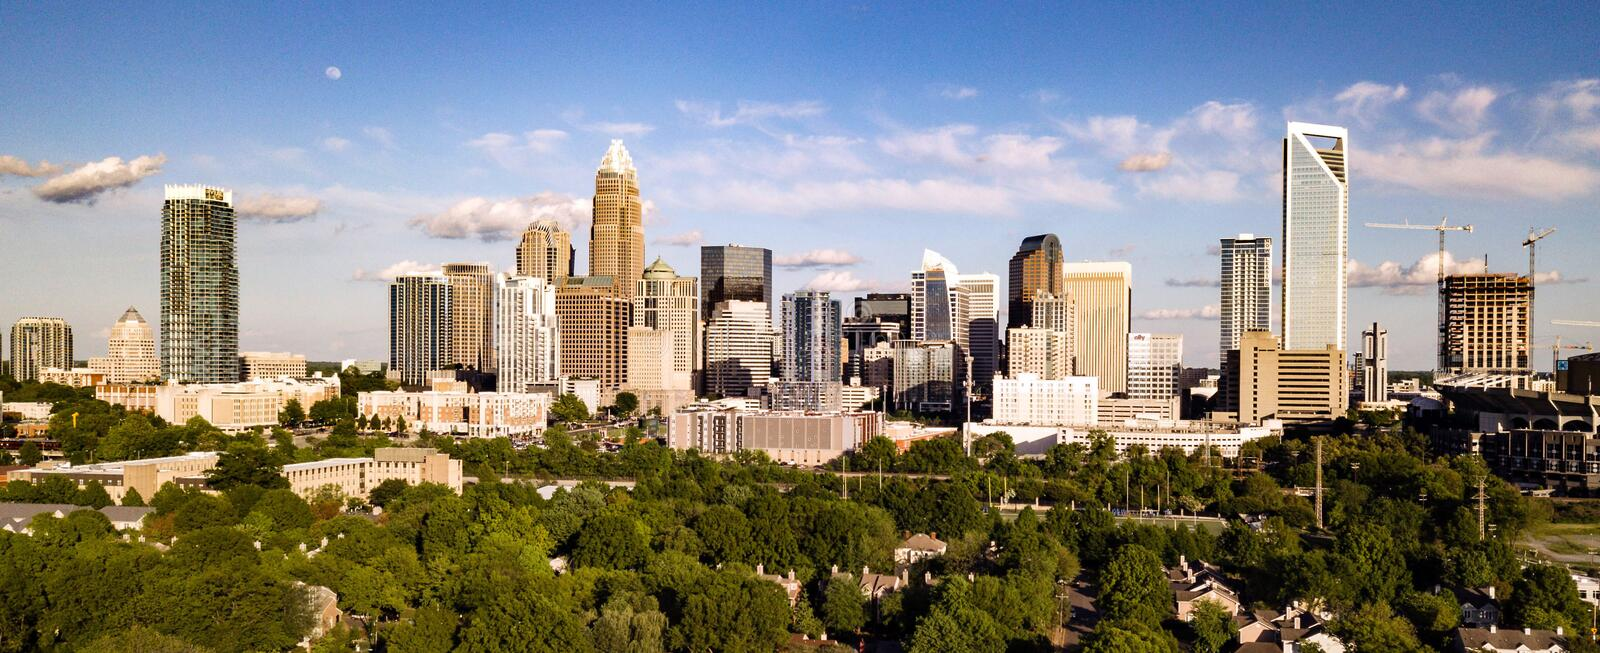 Aerial View Long Panoramic Shot of Charlotte North Carolina Downtown royalty free stock photography